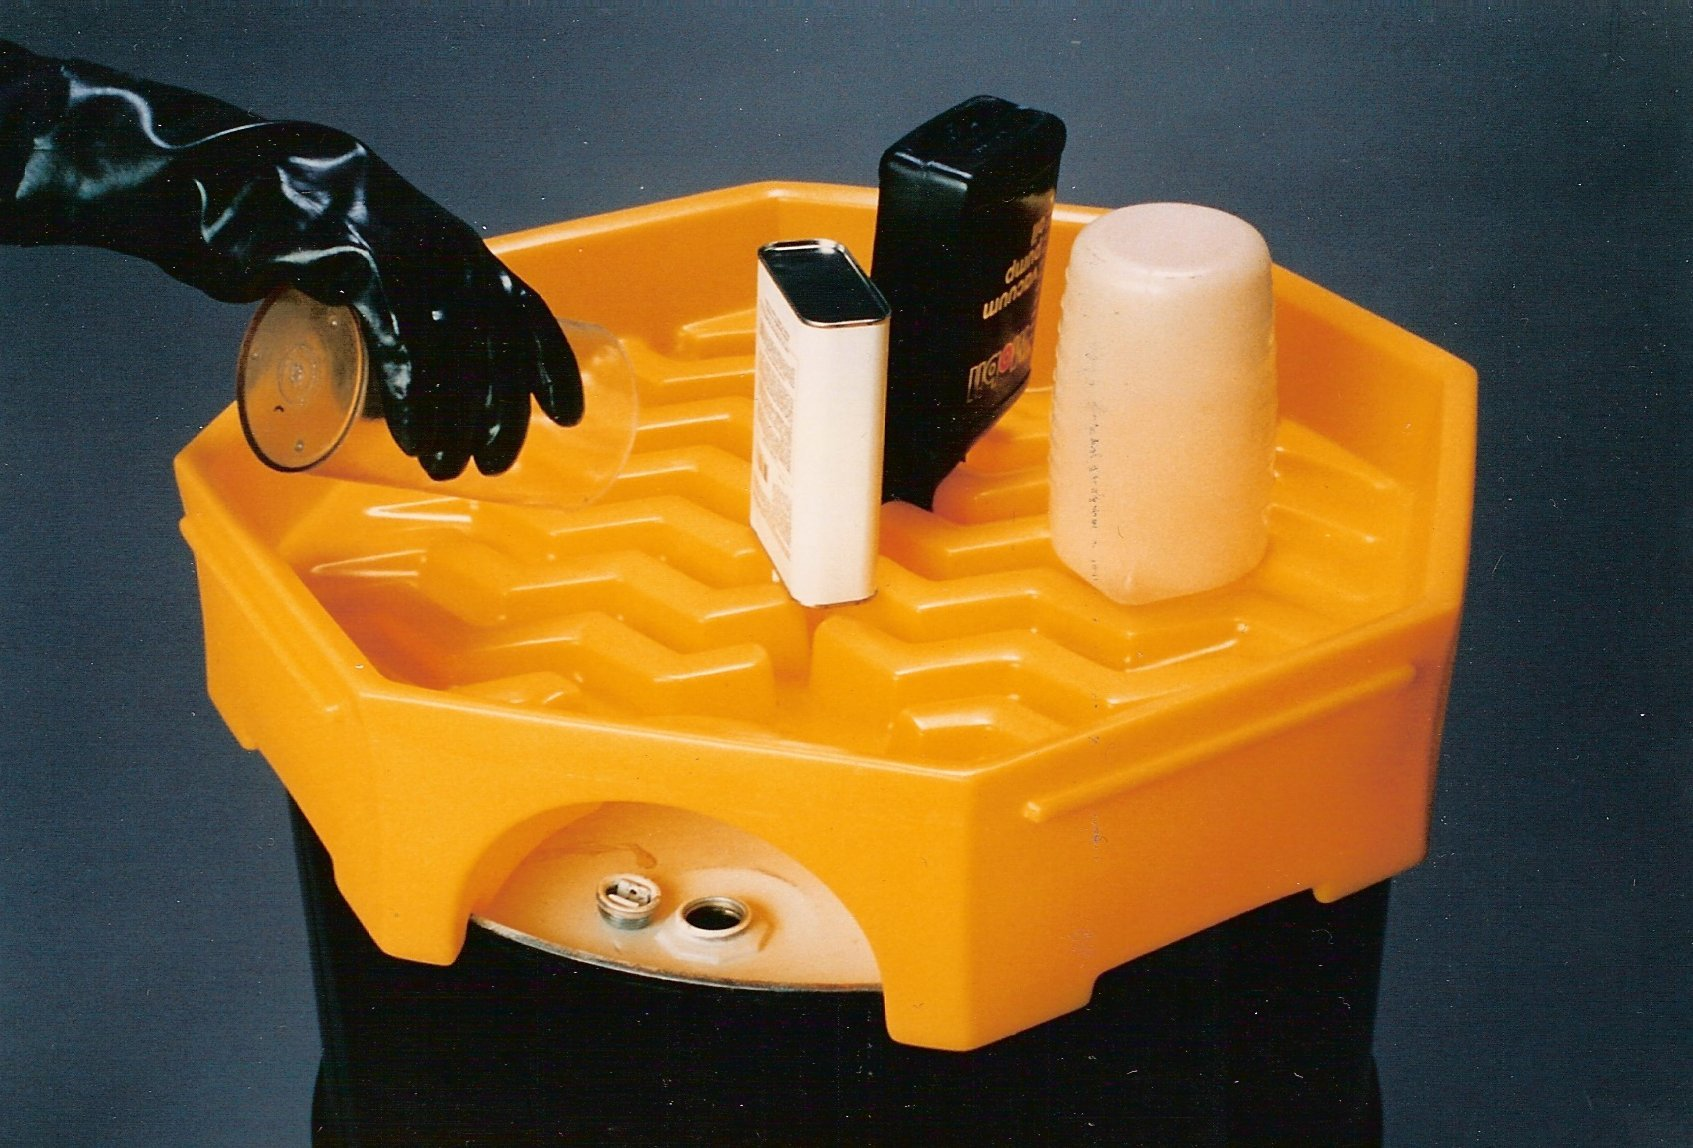 UltraTech 0488 Plastic Bung Access Ultra-Drum Funnel without Spout, 6 Gallon Capacity, 23-5/8'' OD x 5-1/2'' Height, Yellow